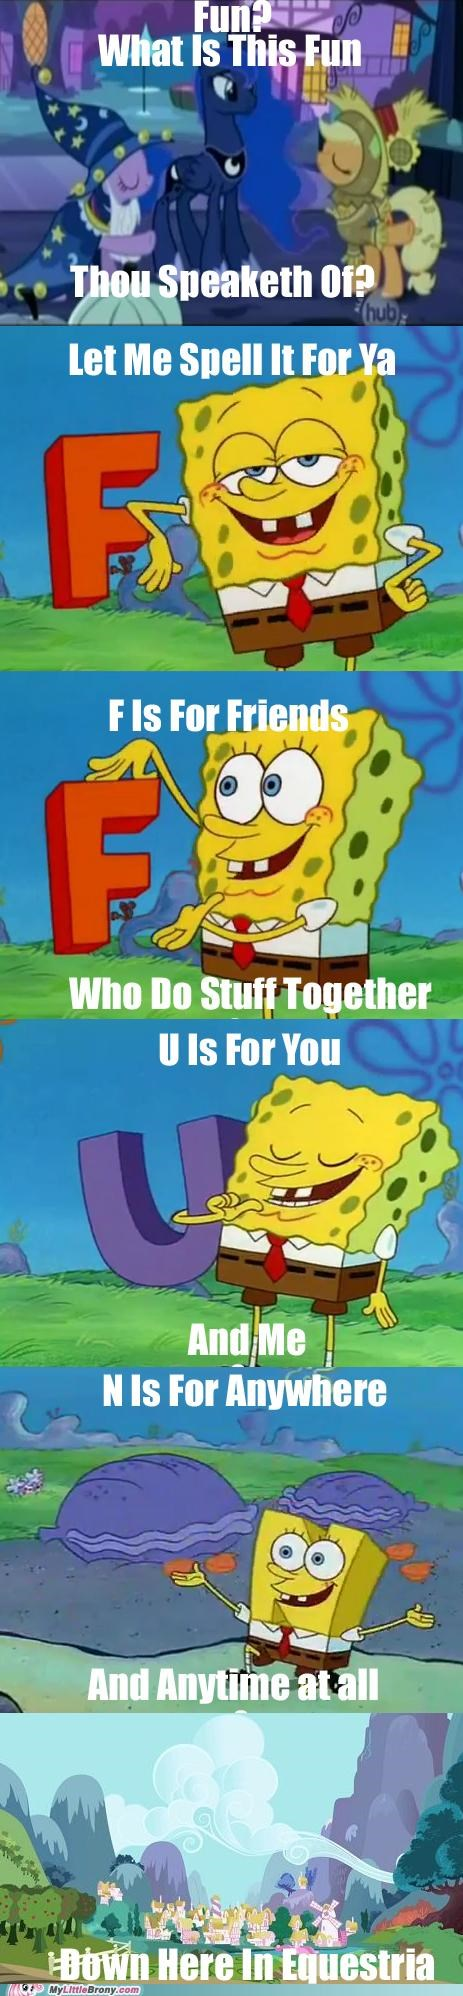 comics doubled f is for fun SpongeBob SquarePants - 5343586560